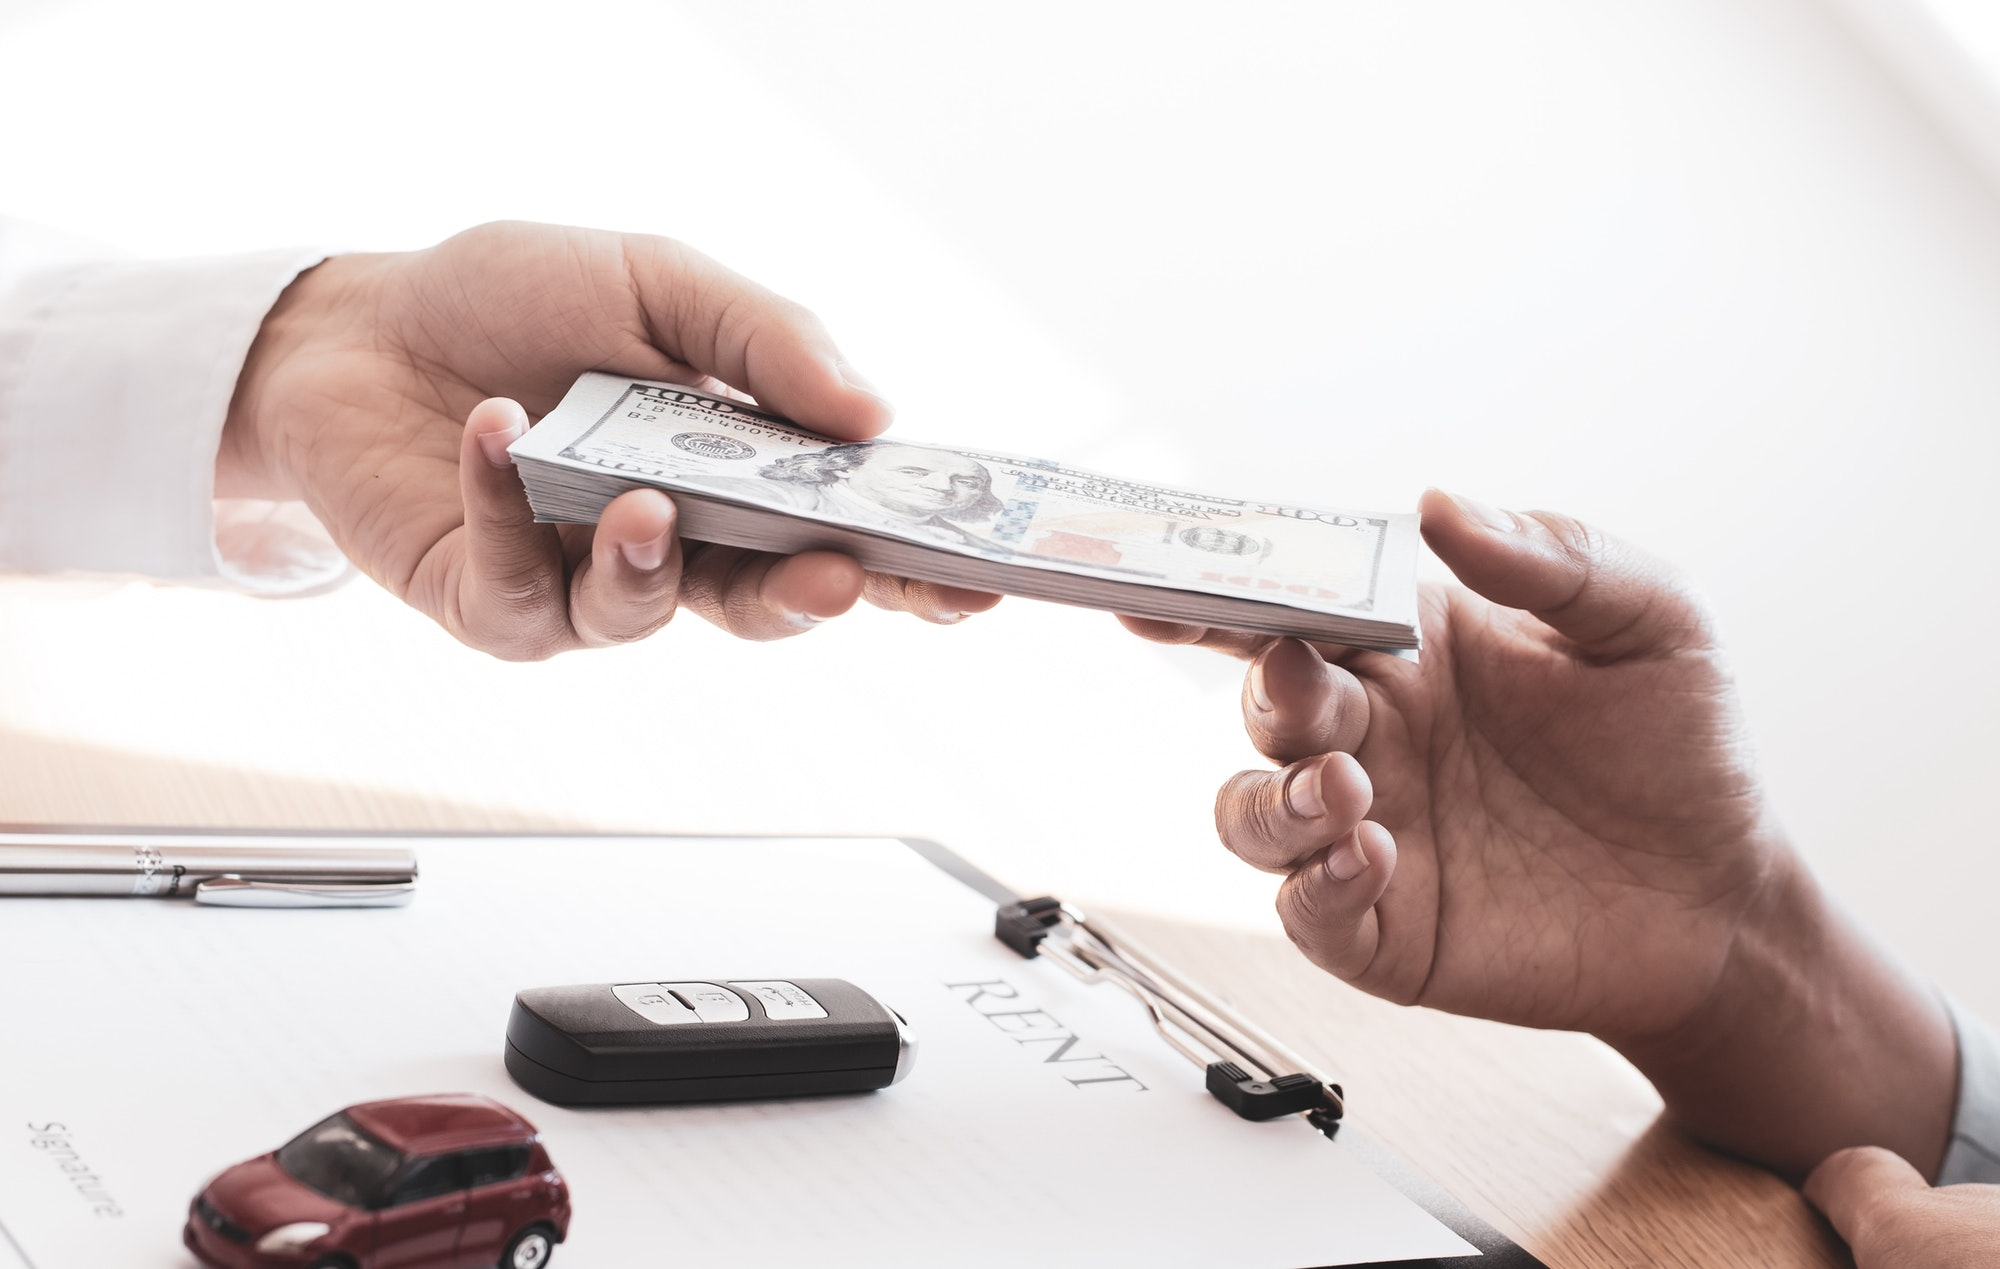 The car salesman handed the keys to the customer who passed the car purchase loan conditions